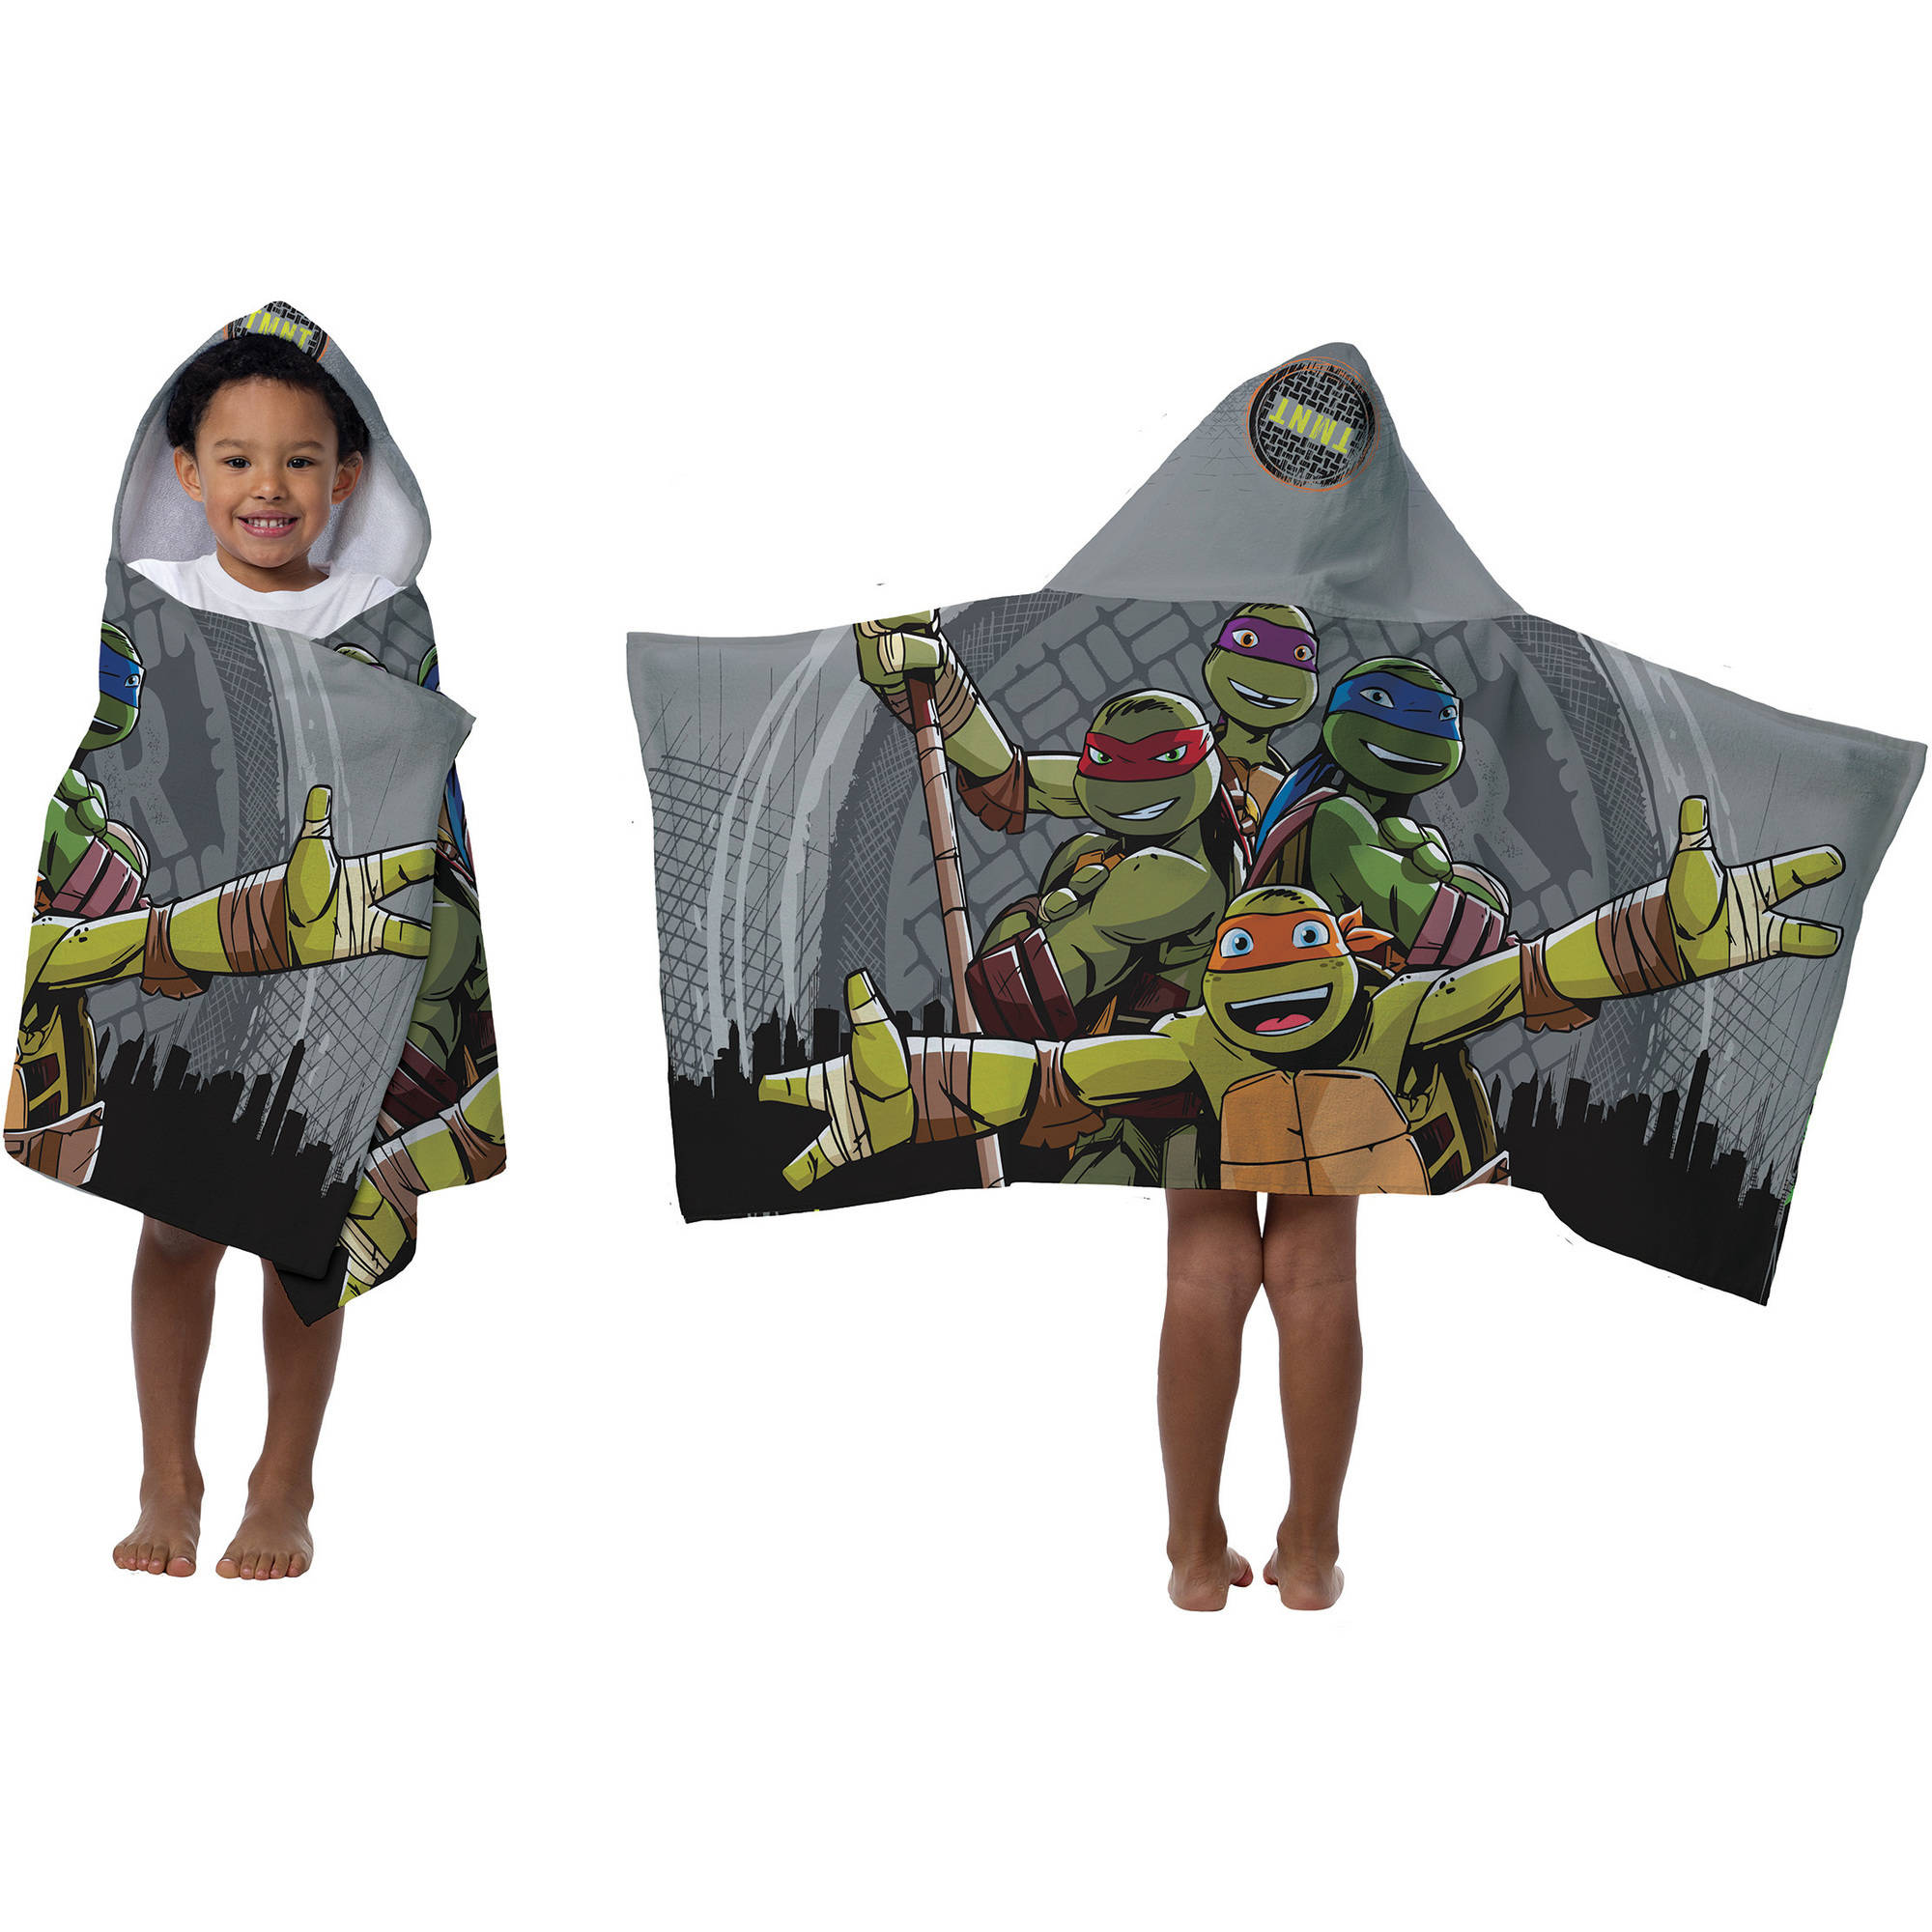 Teenage Mutant Ninja Turtles Hooded Bath Towel, Grey